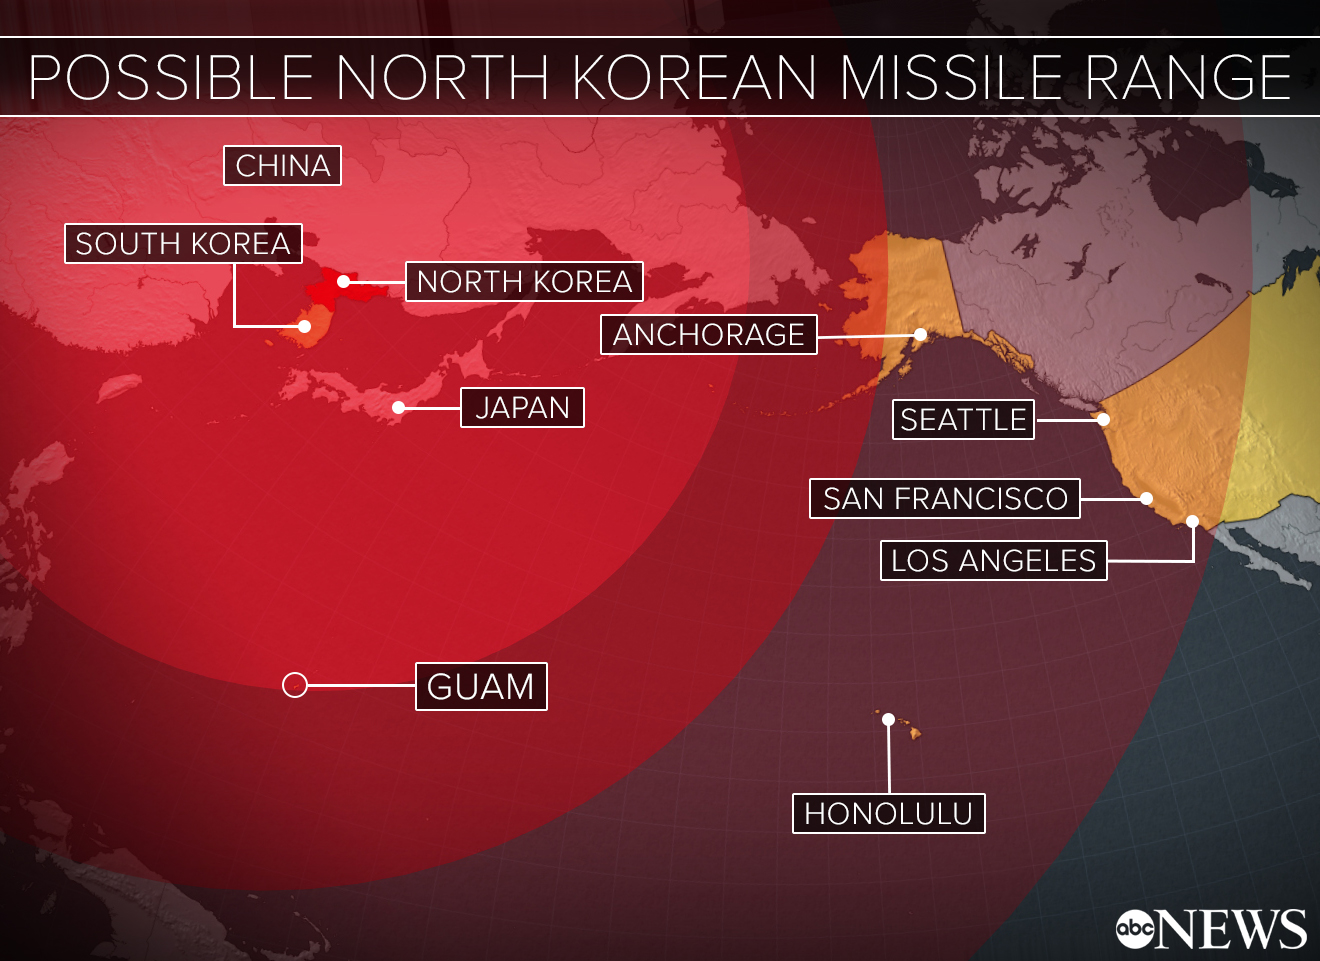 How A North Korean Attack Could Play Out Analysts ABC News - North korea missile hit map in us